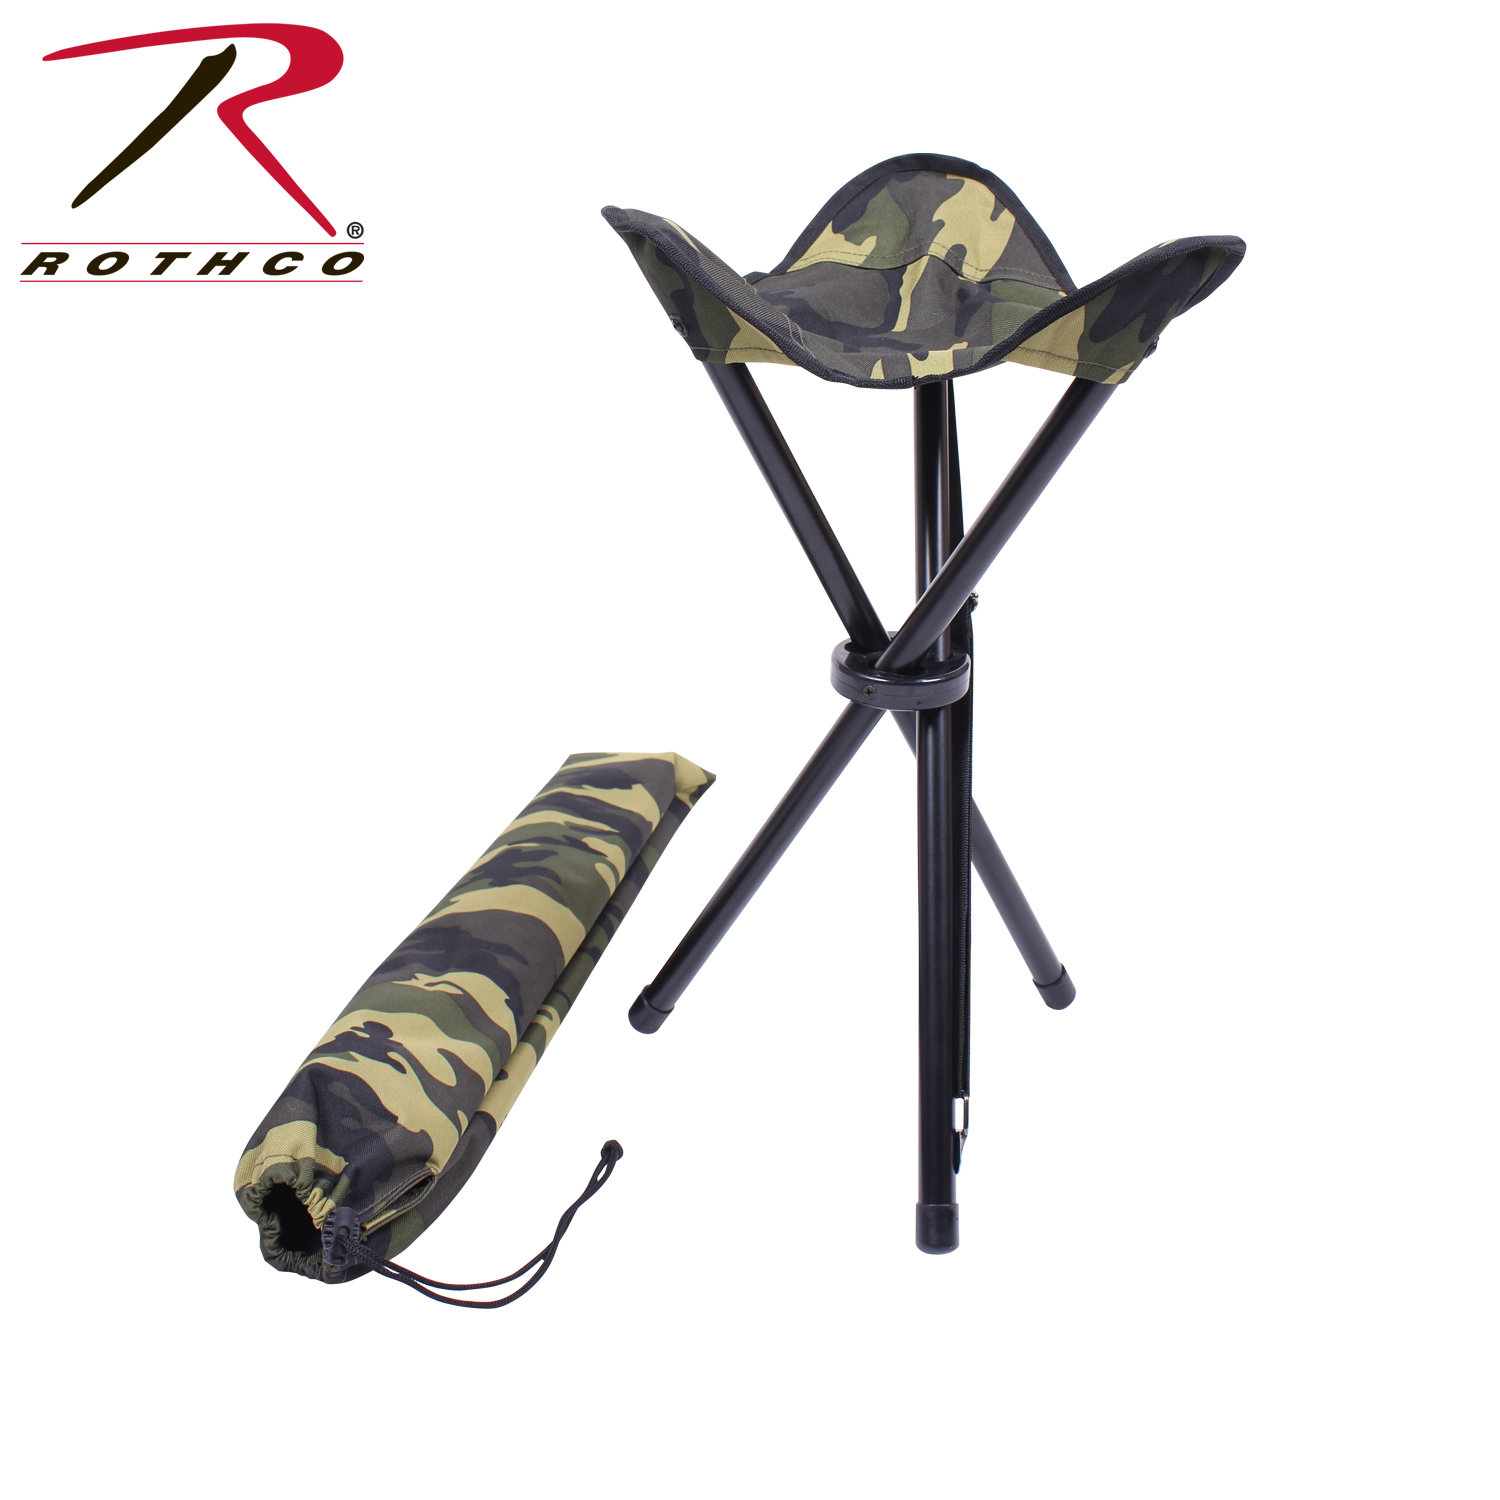 Collapsible Stool with Carry Handle